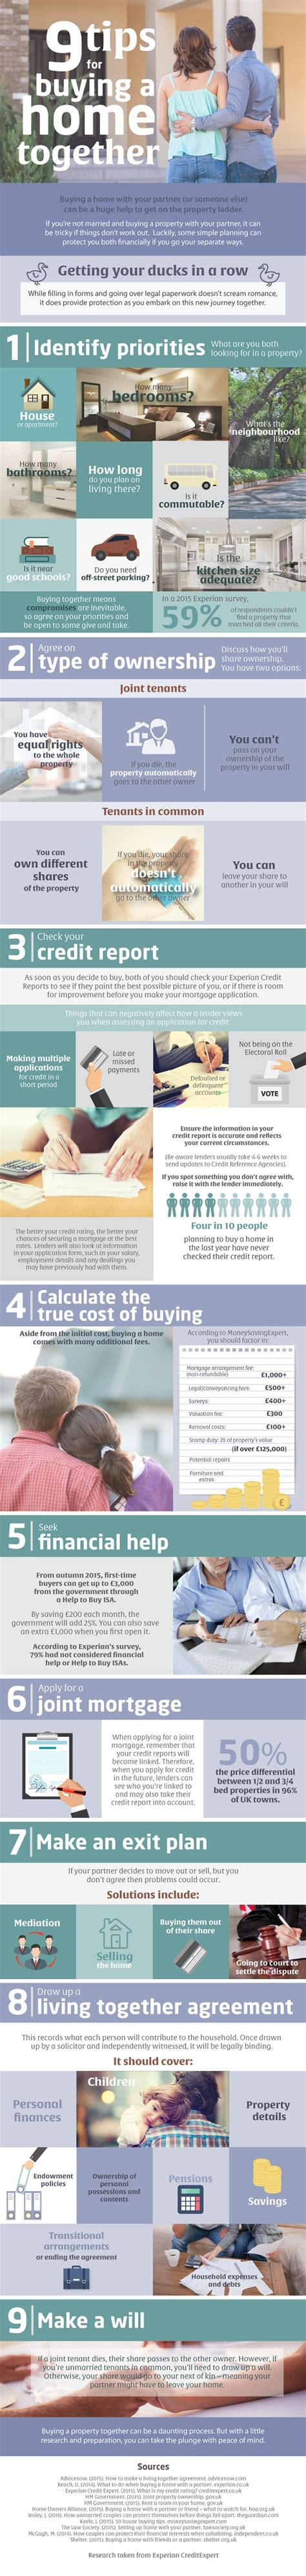 house buying websites uk how to buy a house before marriage an infographic